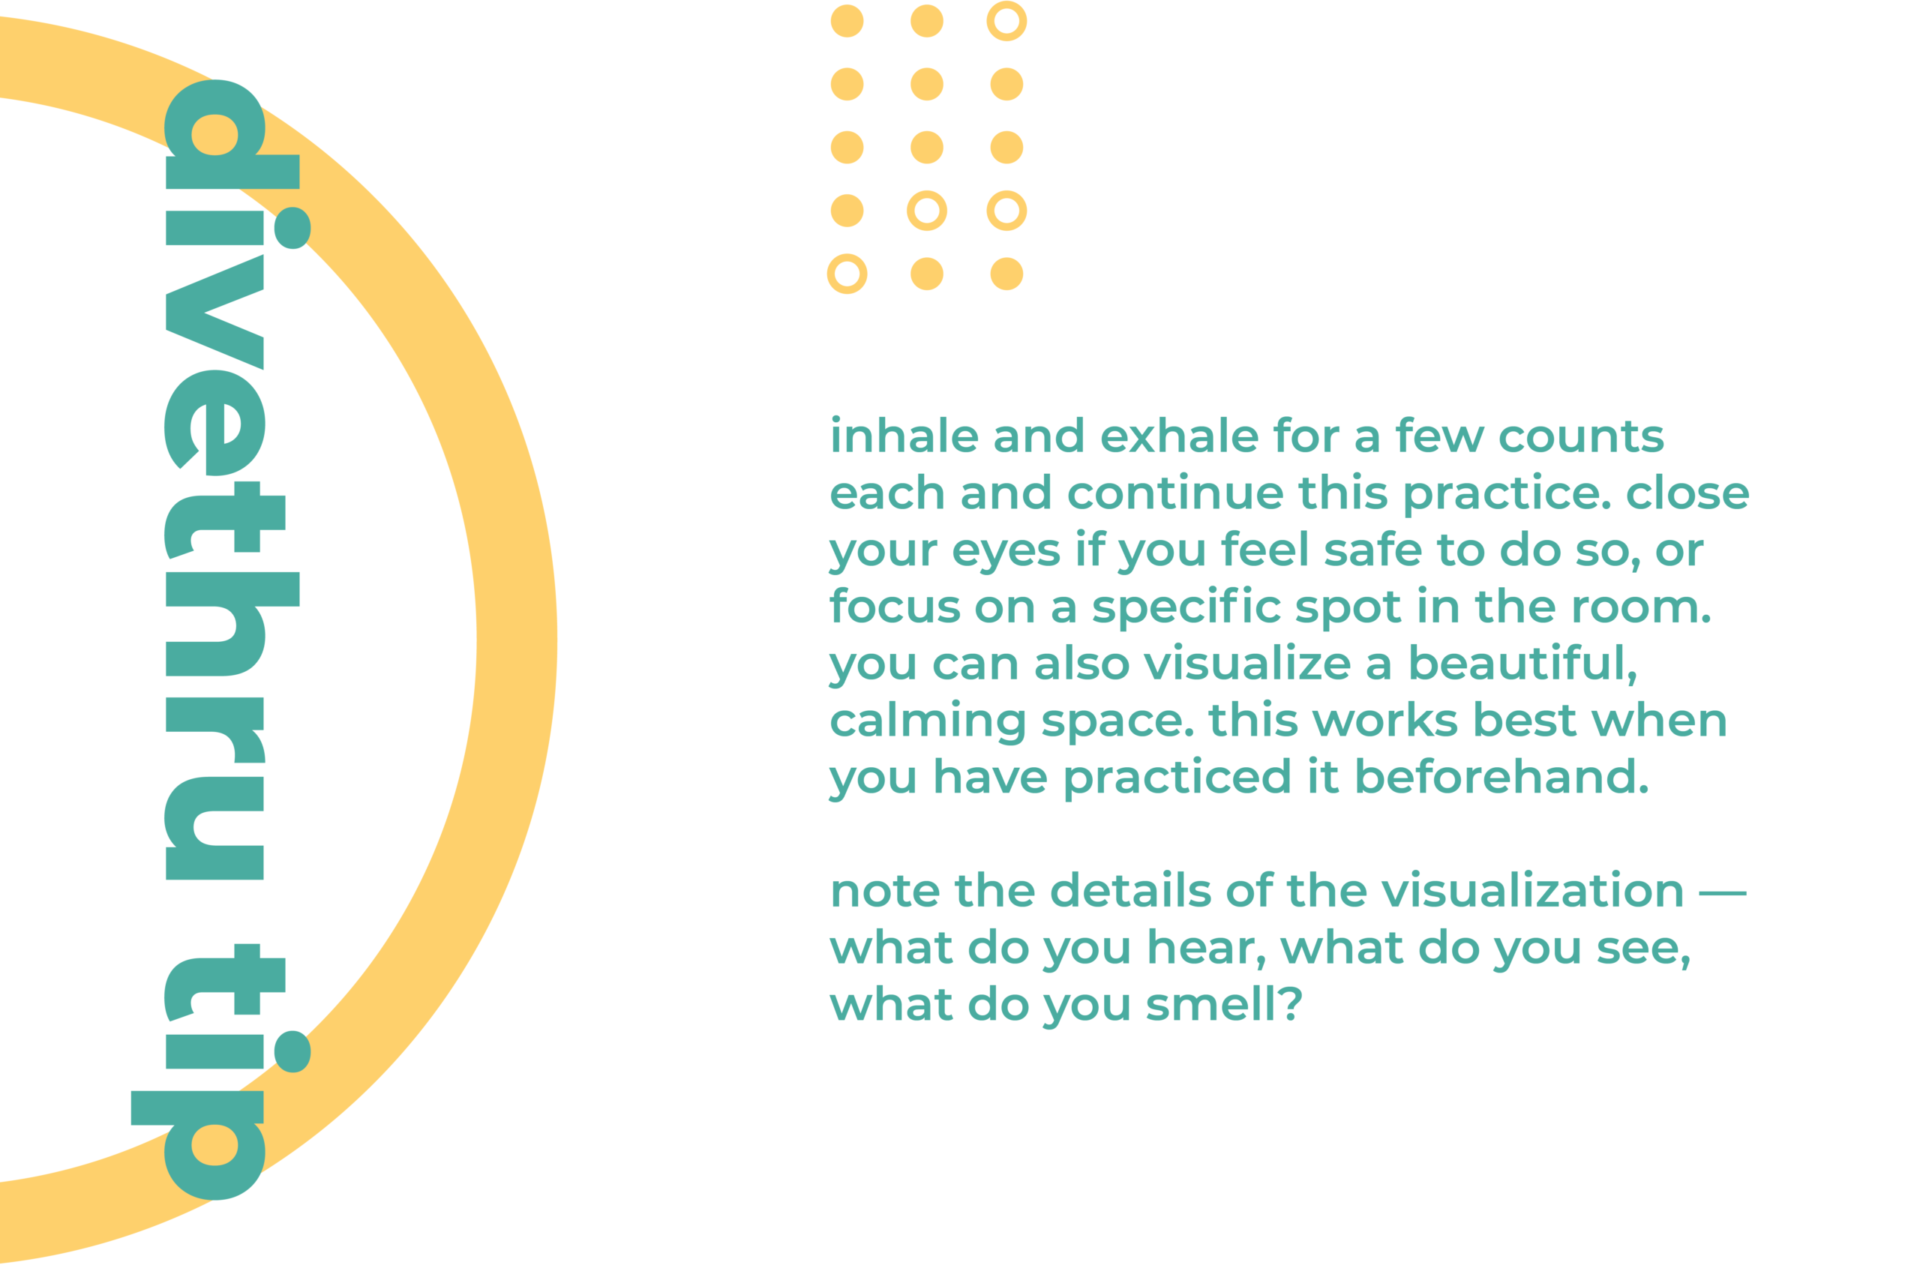 This image gives you a tip on how to deal with a physical sign of anxiety. Inhale and exhale for a few counts each and continue this practice. Close your eyes if you feel safe to do so, or focus on a specific spot in the room. You can also visualize a beautiful, calming space. This works best when you have practiced it beforehand. Note the details of the visualization — what do you hear, what do you see, what do you smell?